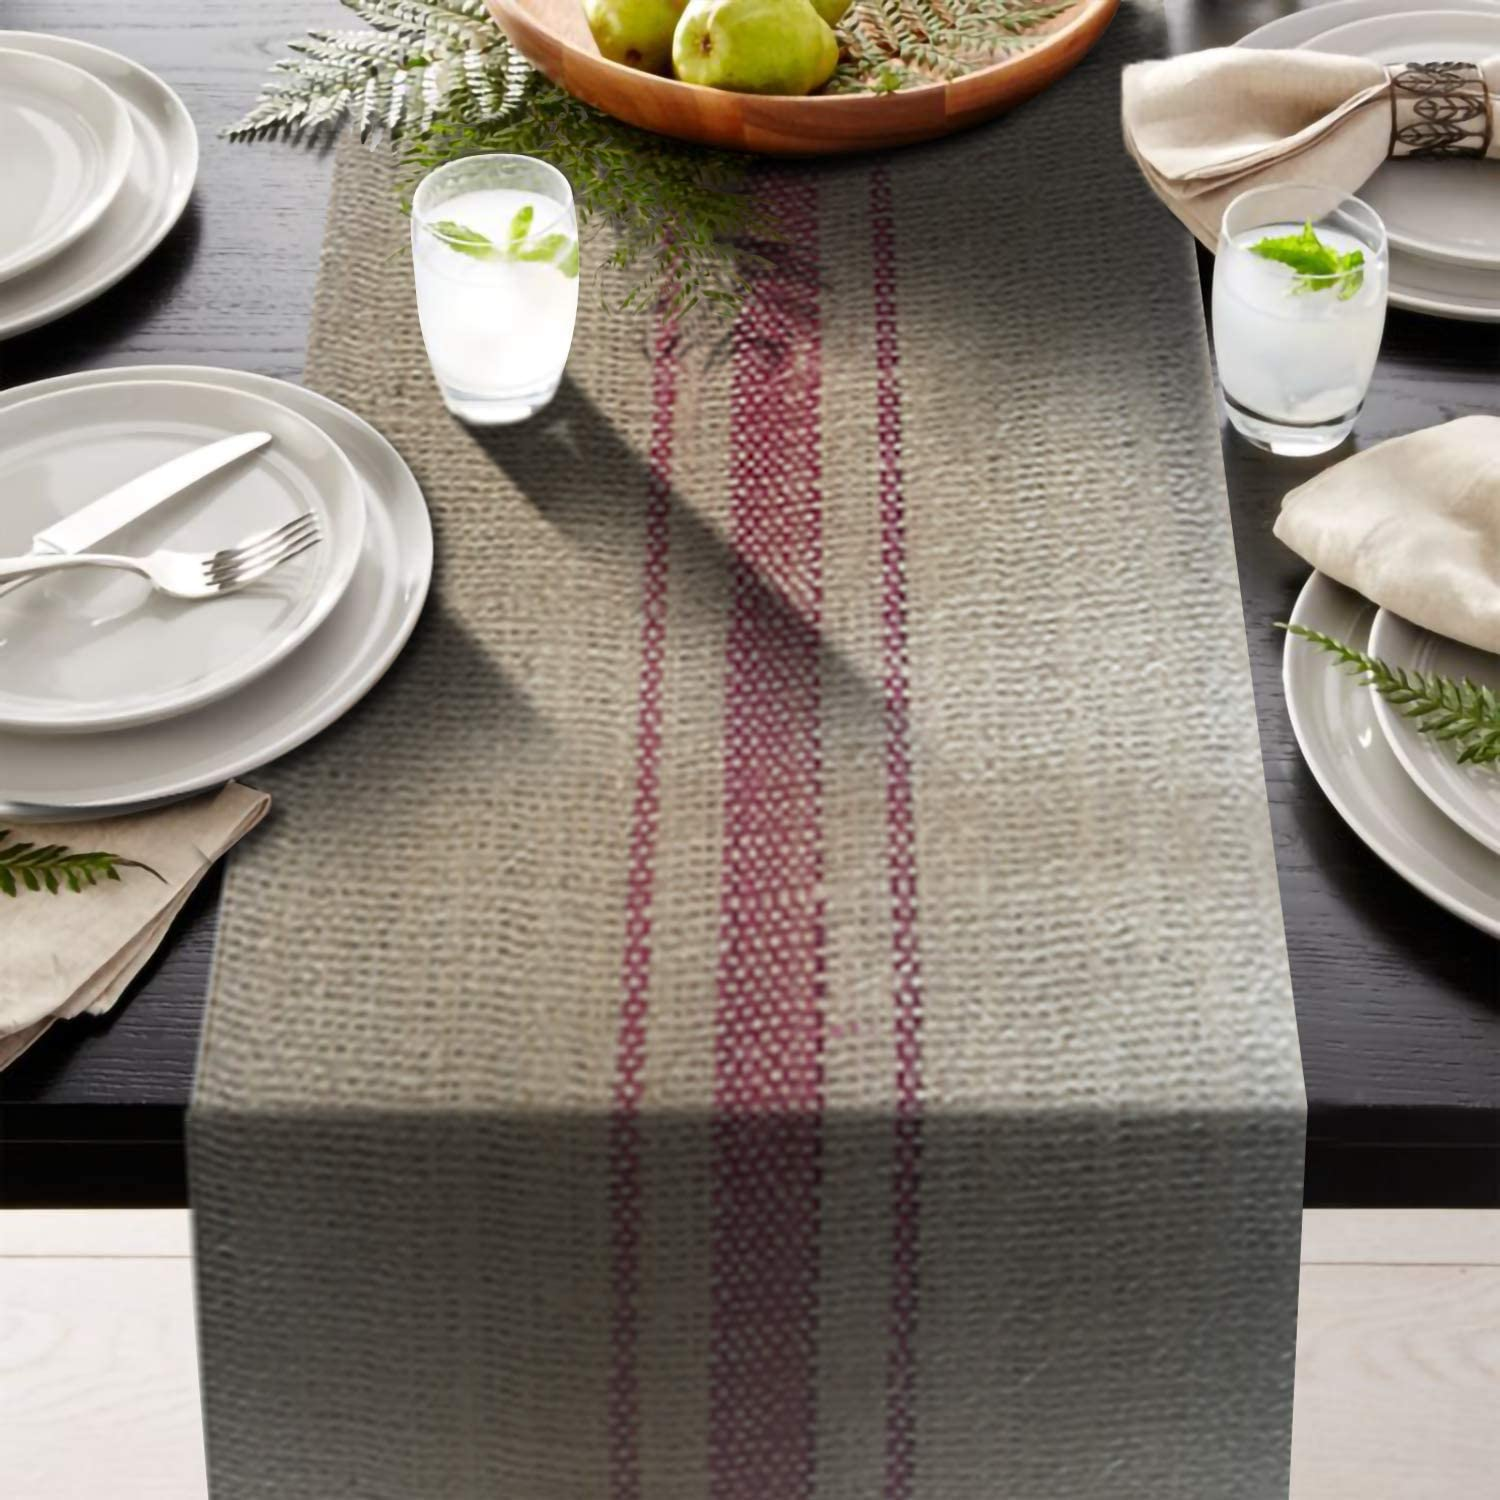 AAYU Brand Premium 10 yds Burlap Table Runner with 3 Stripes Down The Middle | 12 inch x 30 ft | Non-Fraying | Food Grade Burlap | Eco-Friendly, Natural Jute Product | 360 inches Long (Magenta)